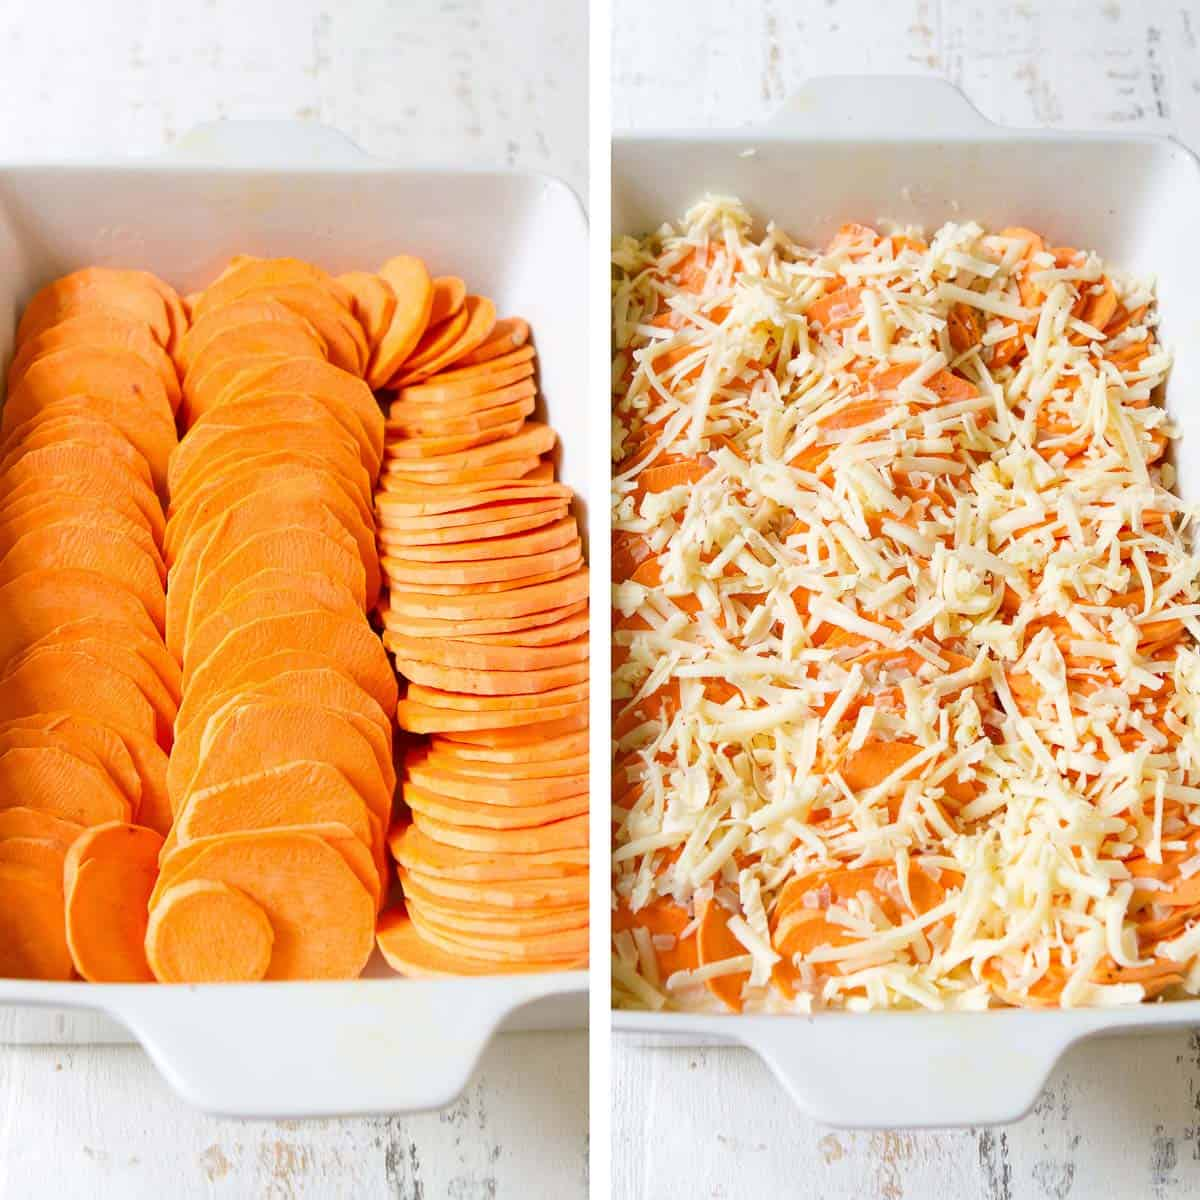 Sweet potato slices in rows, topped with grated cheese, in a large, white baking dish.